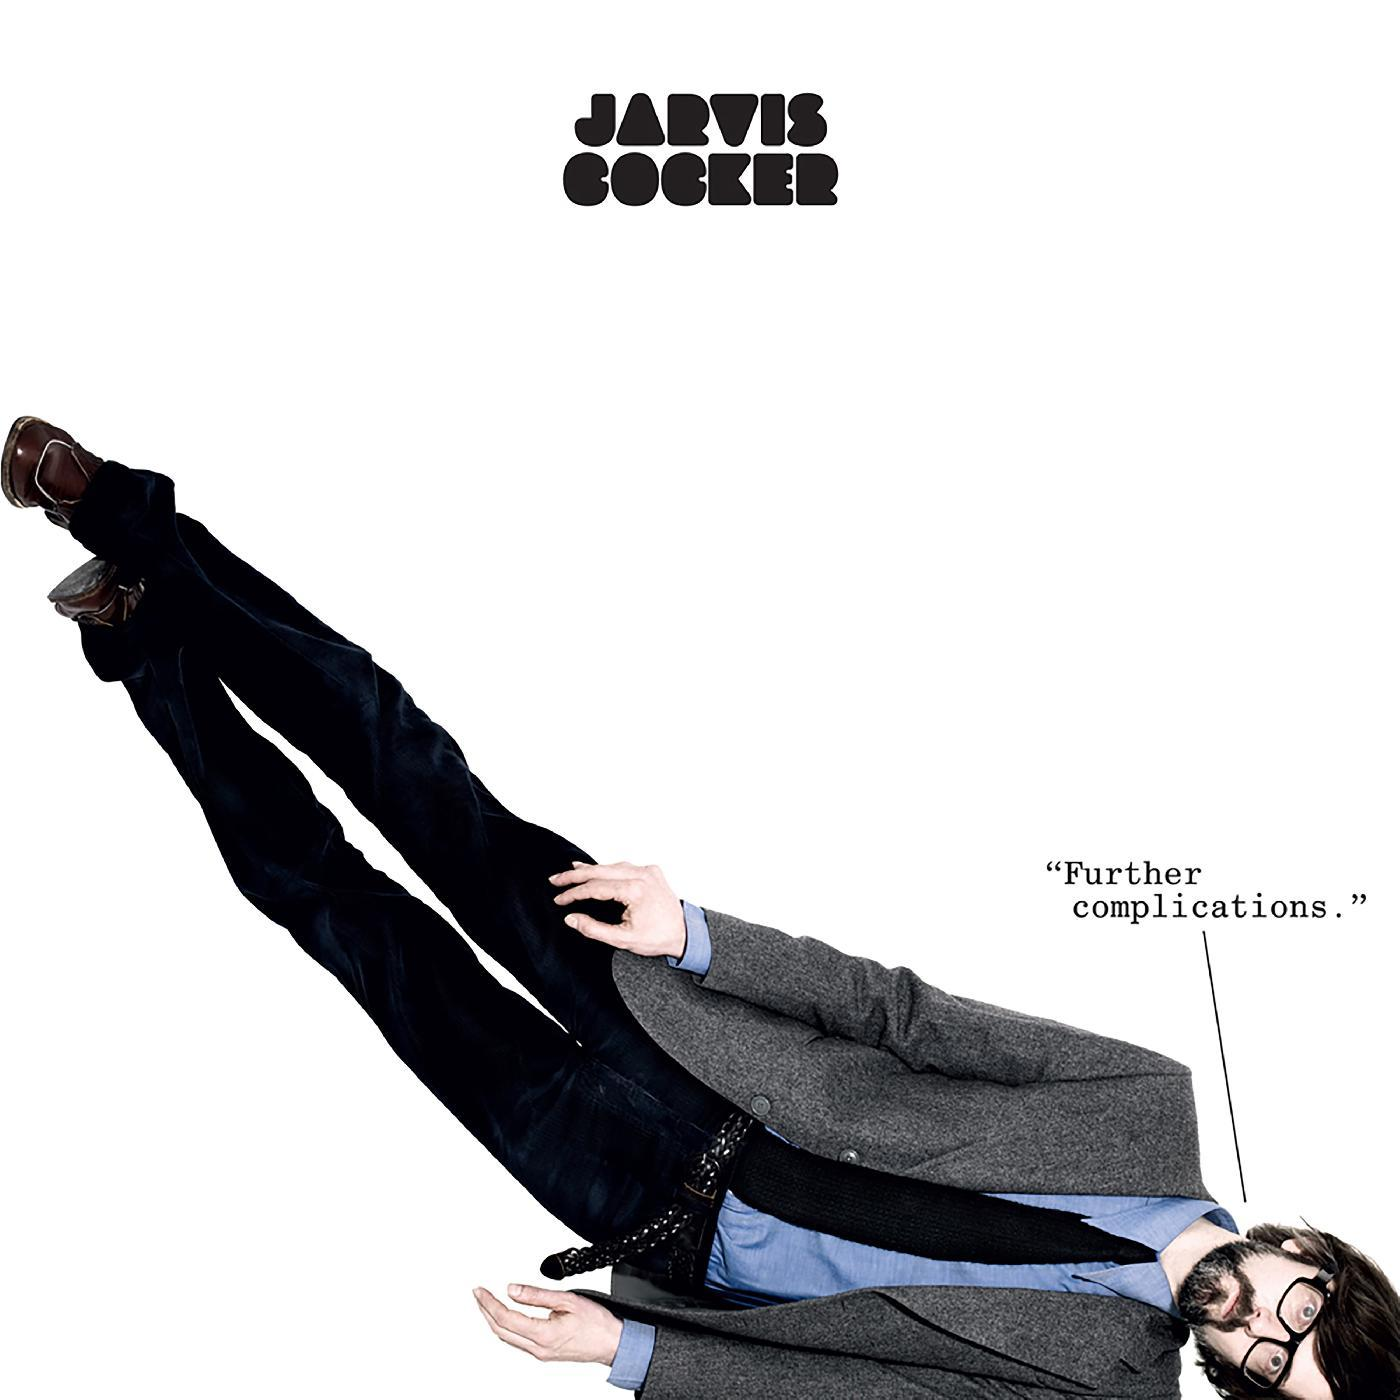 Jarvis Cocker - Further Complications (Uk)